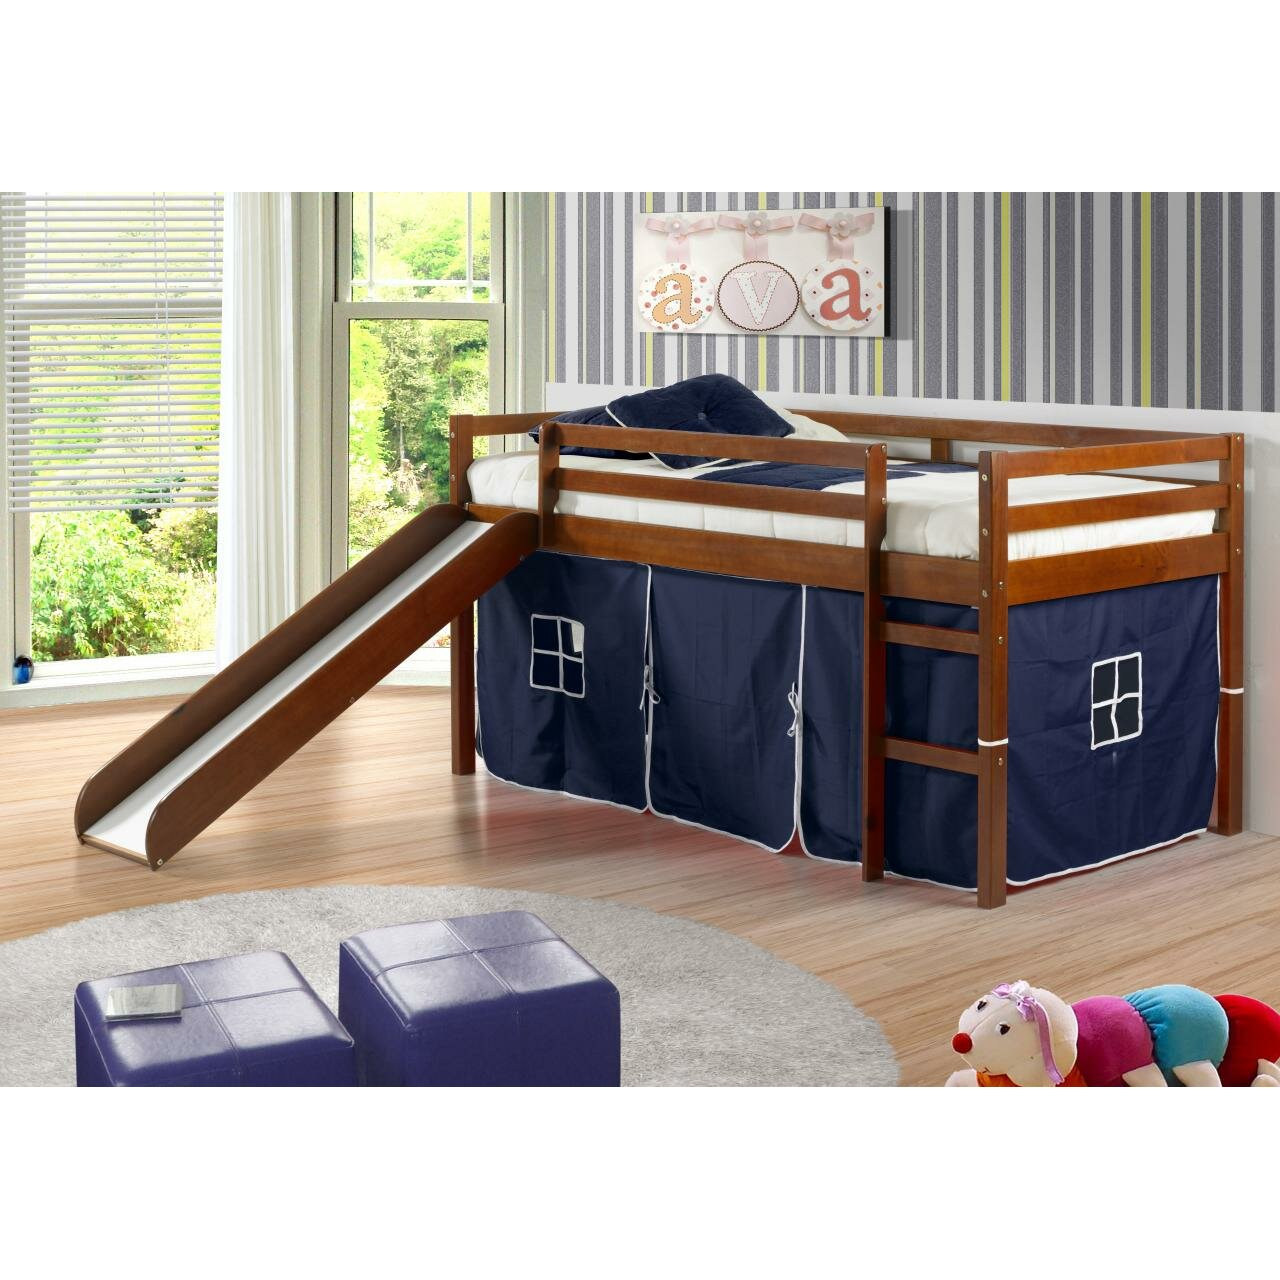 Bunk beds with slide and tent - Tent Twin Low Loft Bed With Slide